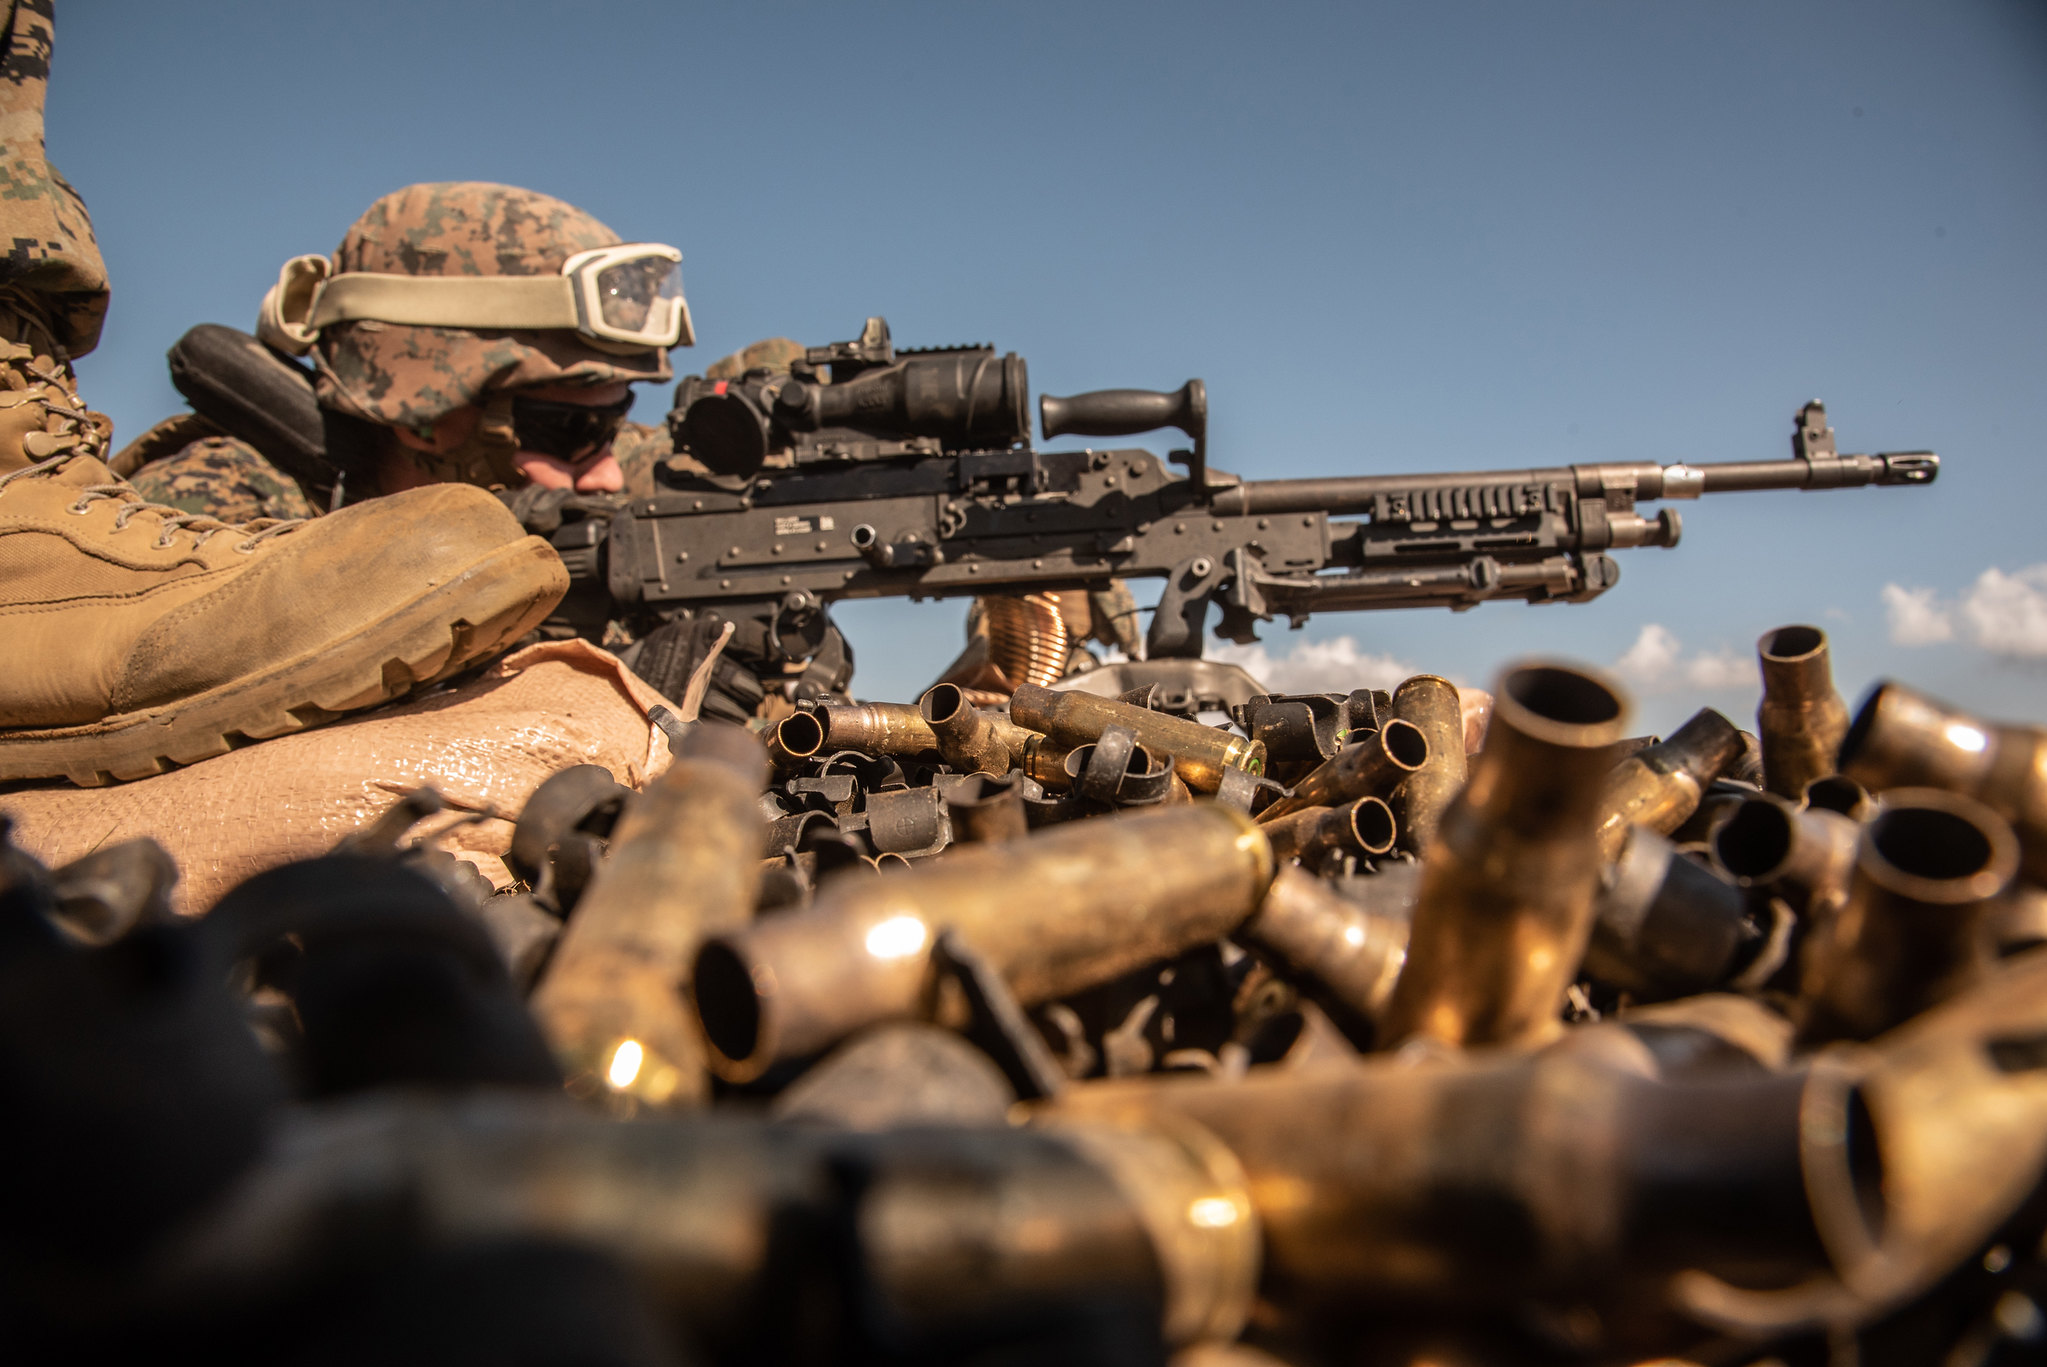 Hospital Corpsman 2nd Class Christopher Walters fires an M240B machine gun during Artillery Relocation Training Program 21.1 at the Combined Arms Training Center at Camp Fuji, Japan, April 26, 2021. (Cpl. Michael Jefferson Estillomo/Marine Corps)